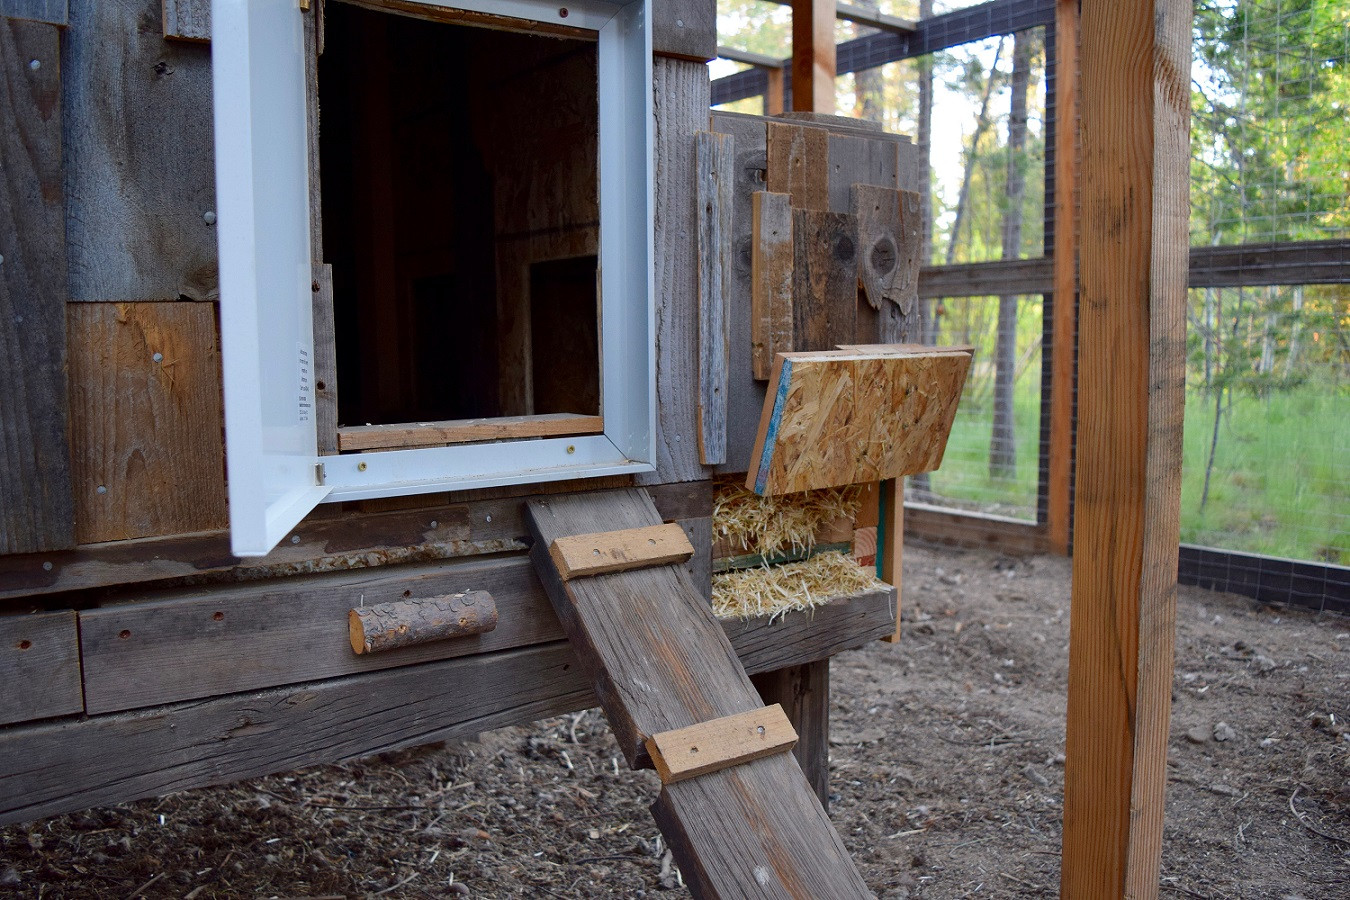 Hen house door & ladder